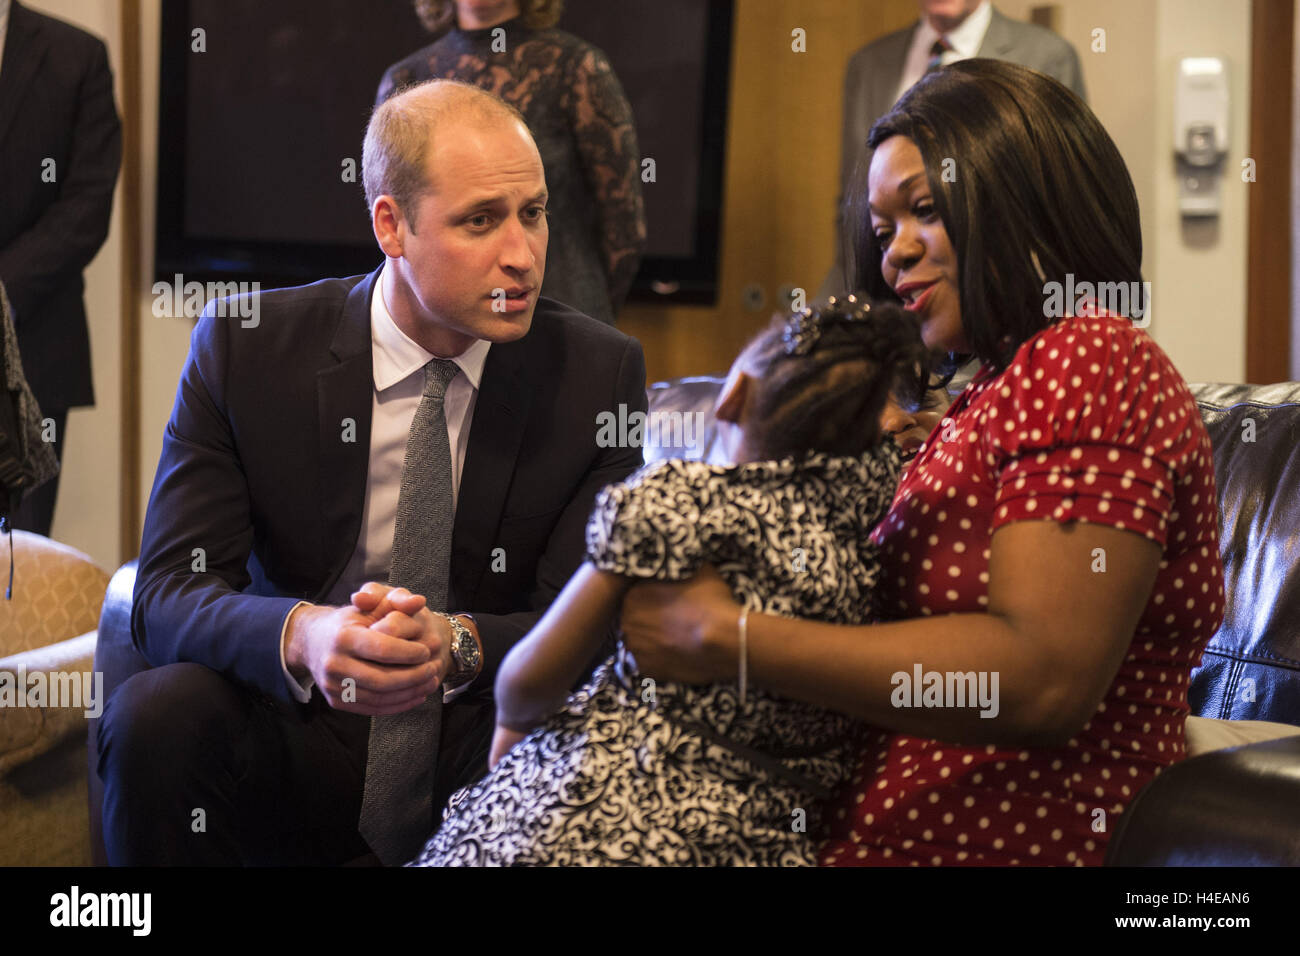 The Duke of Cambridge speak with familes receiving support, staff and trustees during a visit to Francis House hospice - Stock Image